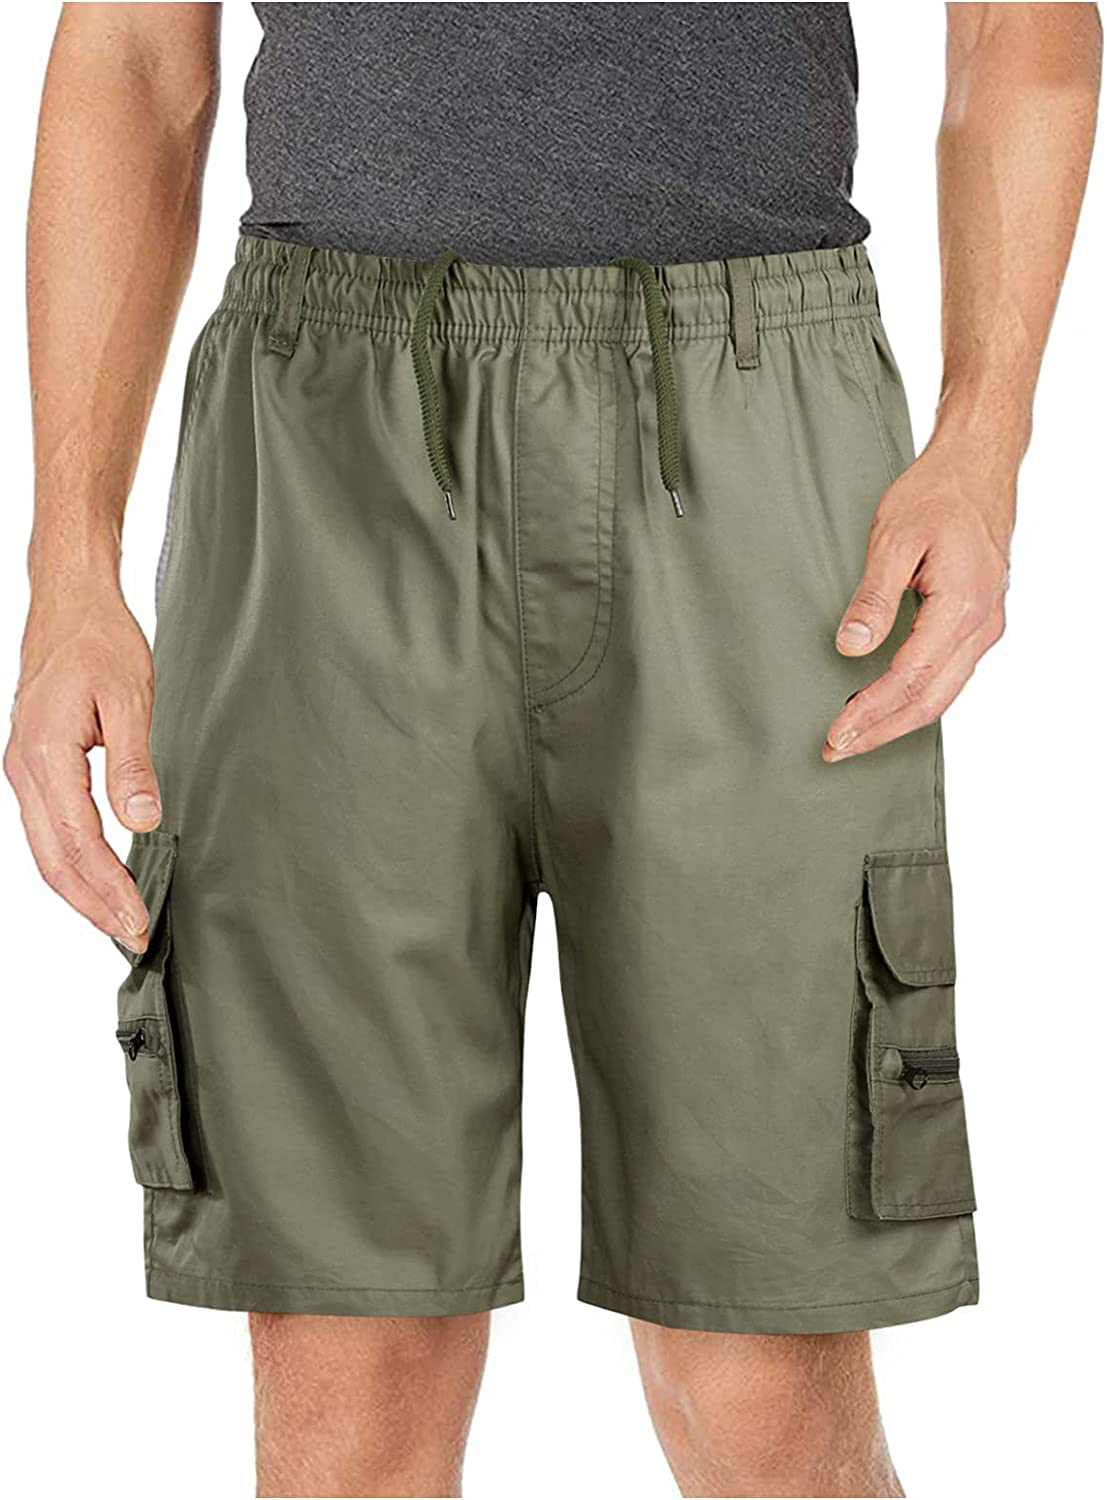 Men's Advanced Cargo Shorts Easily fit Multi-Pocket Outdoor Solid Color Cargo Shorts Cotton